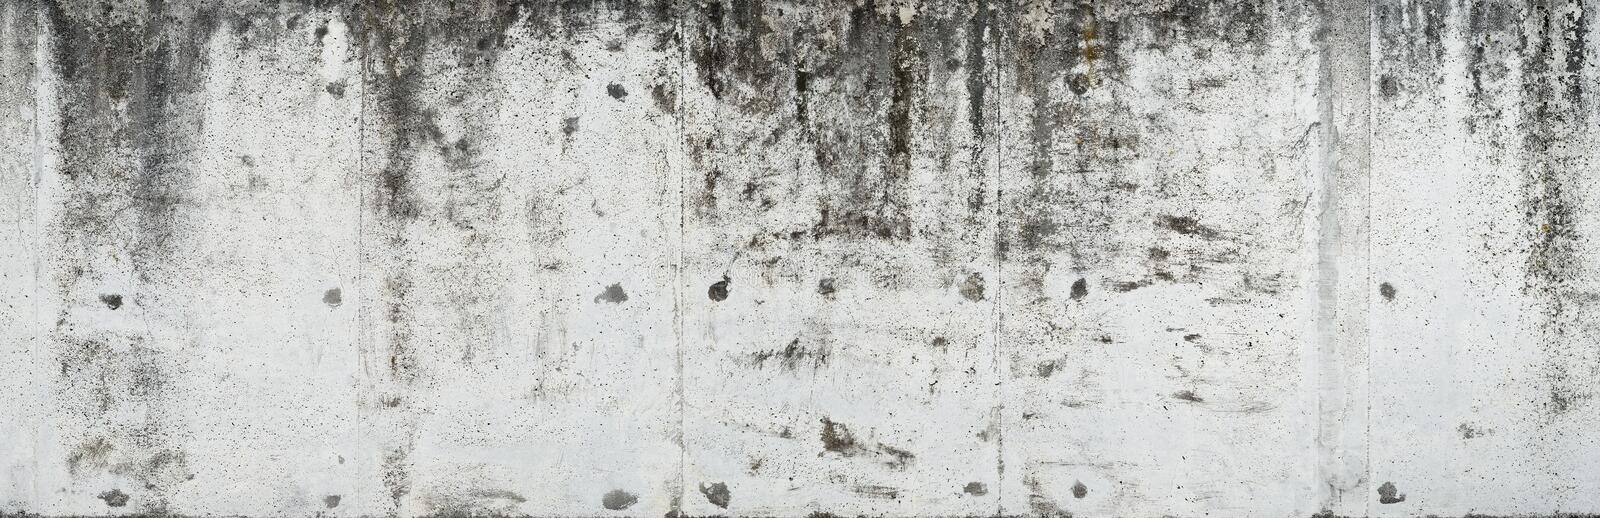 Concrete wall texture pattern background, grunge outside. Dirty stock image